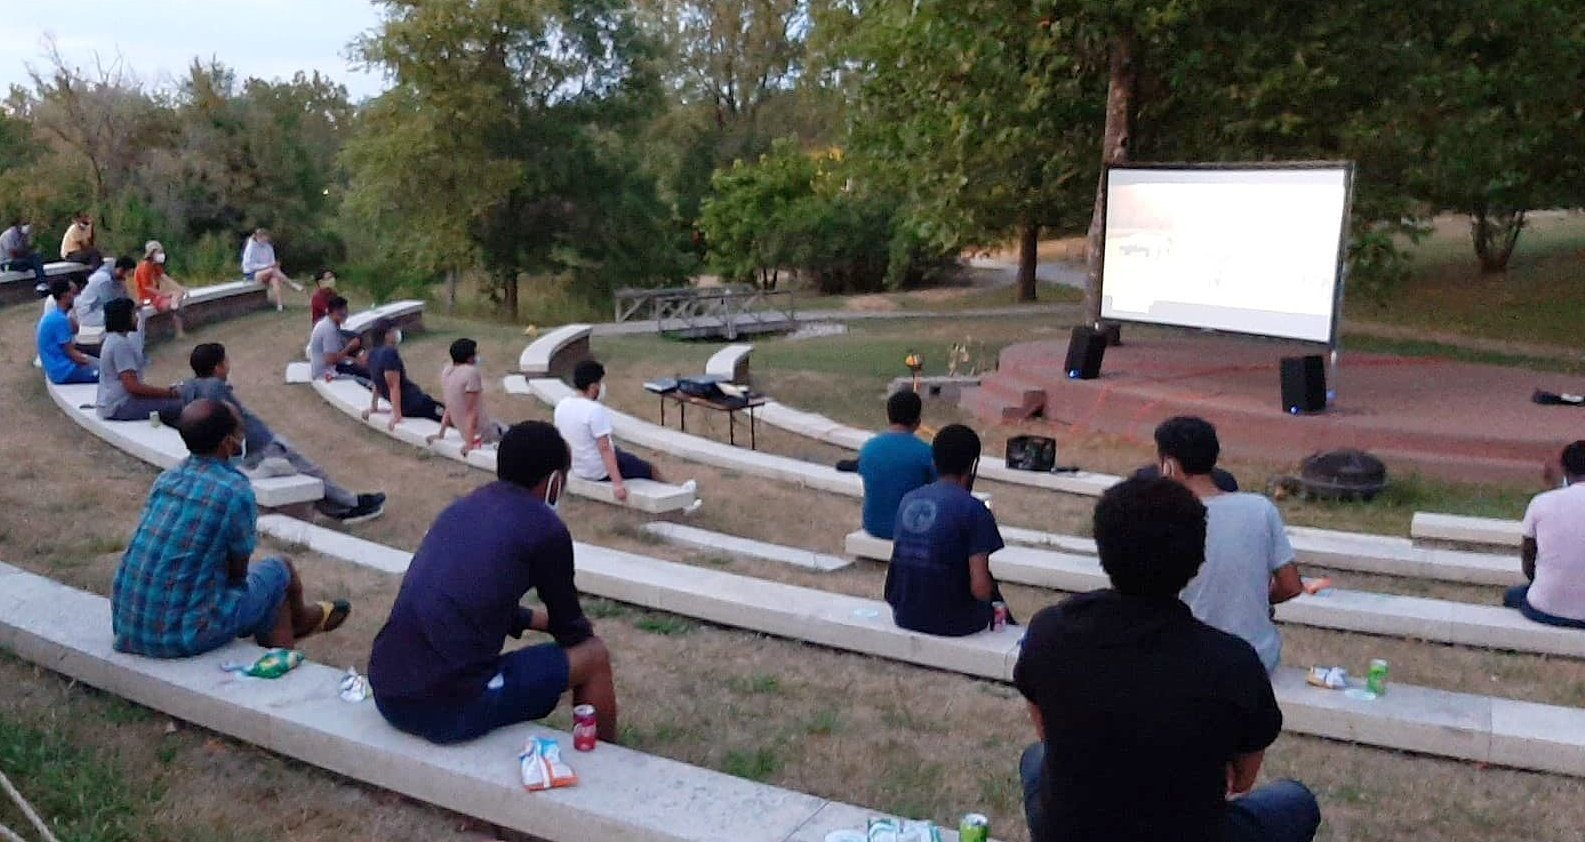 Students safely enjoy movies in the park on pleasant weekend evening--masks and distancing mandatory!